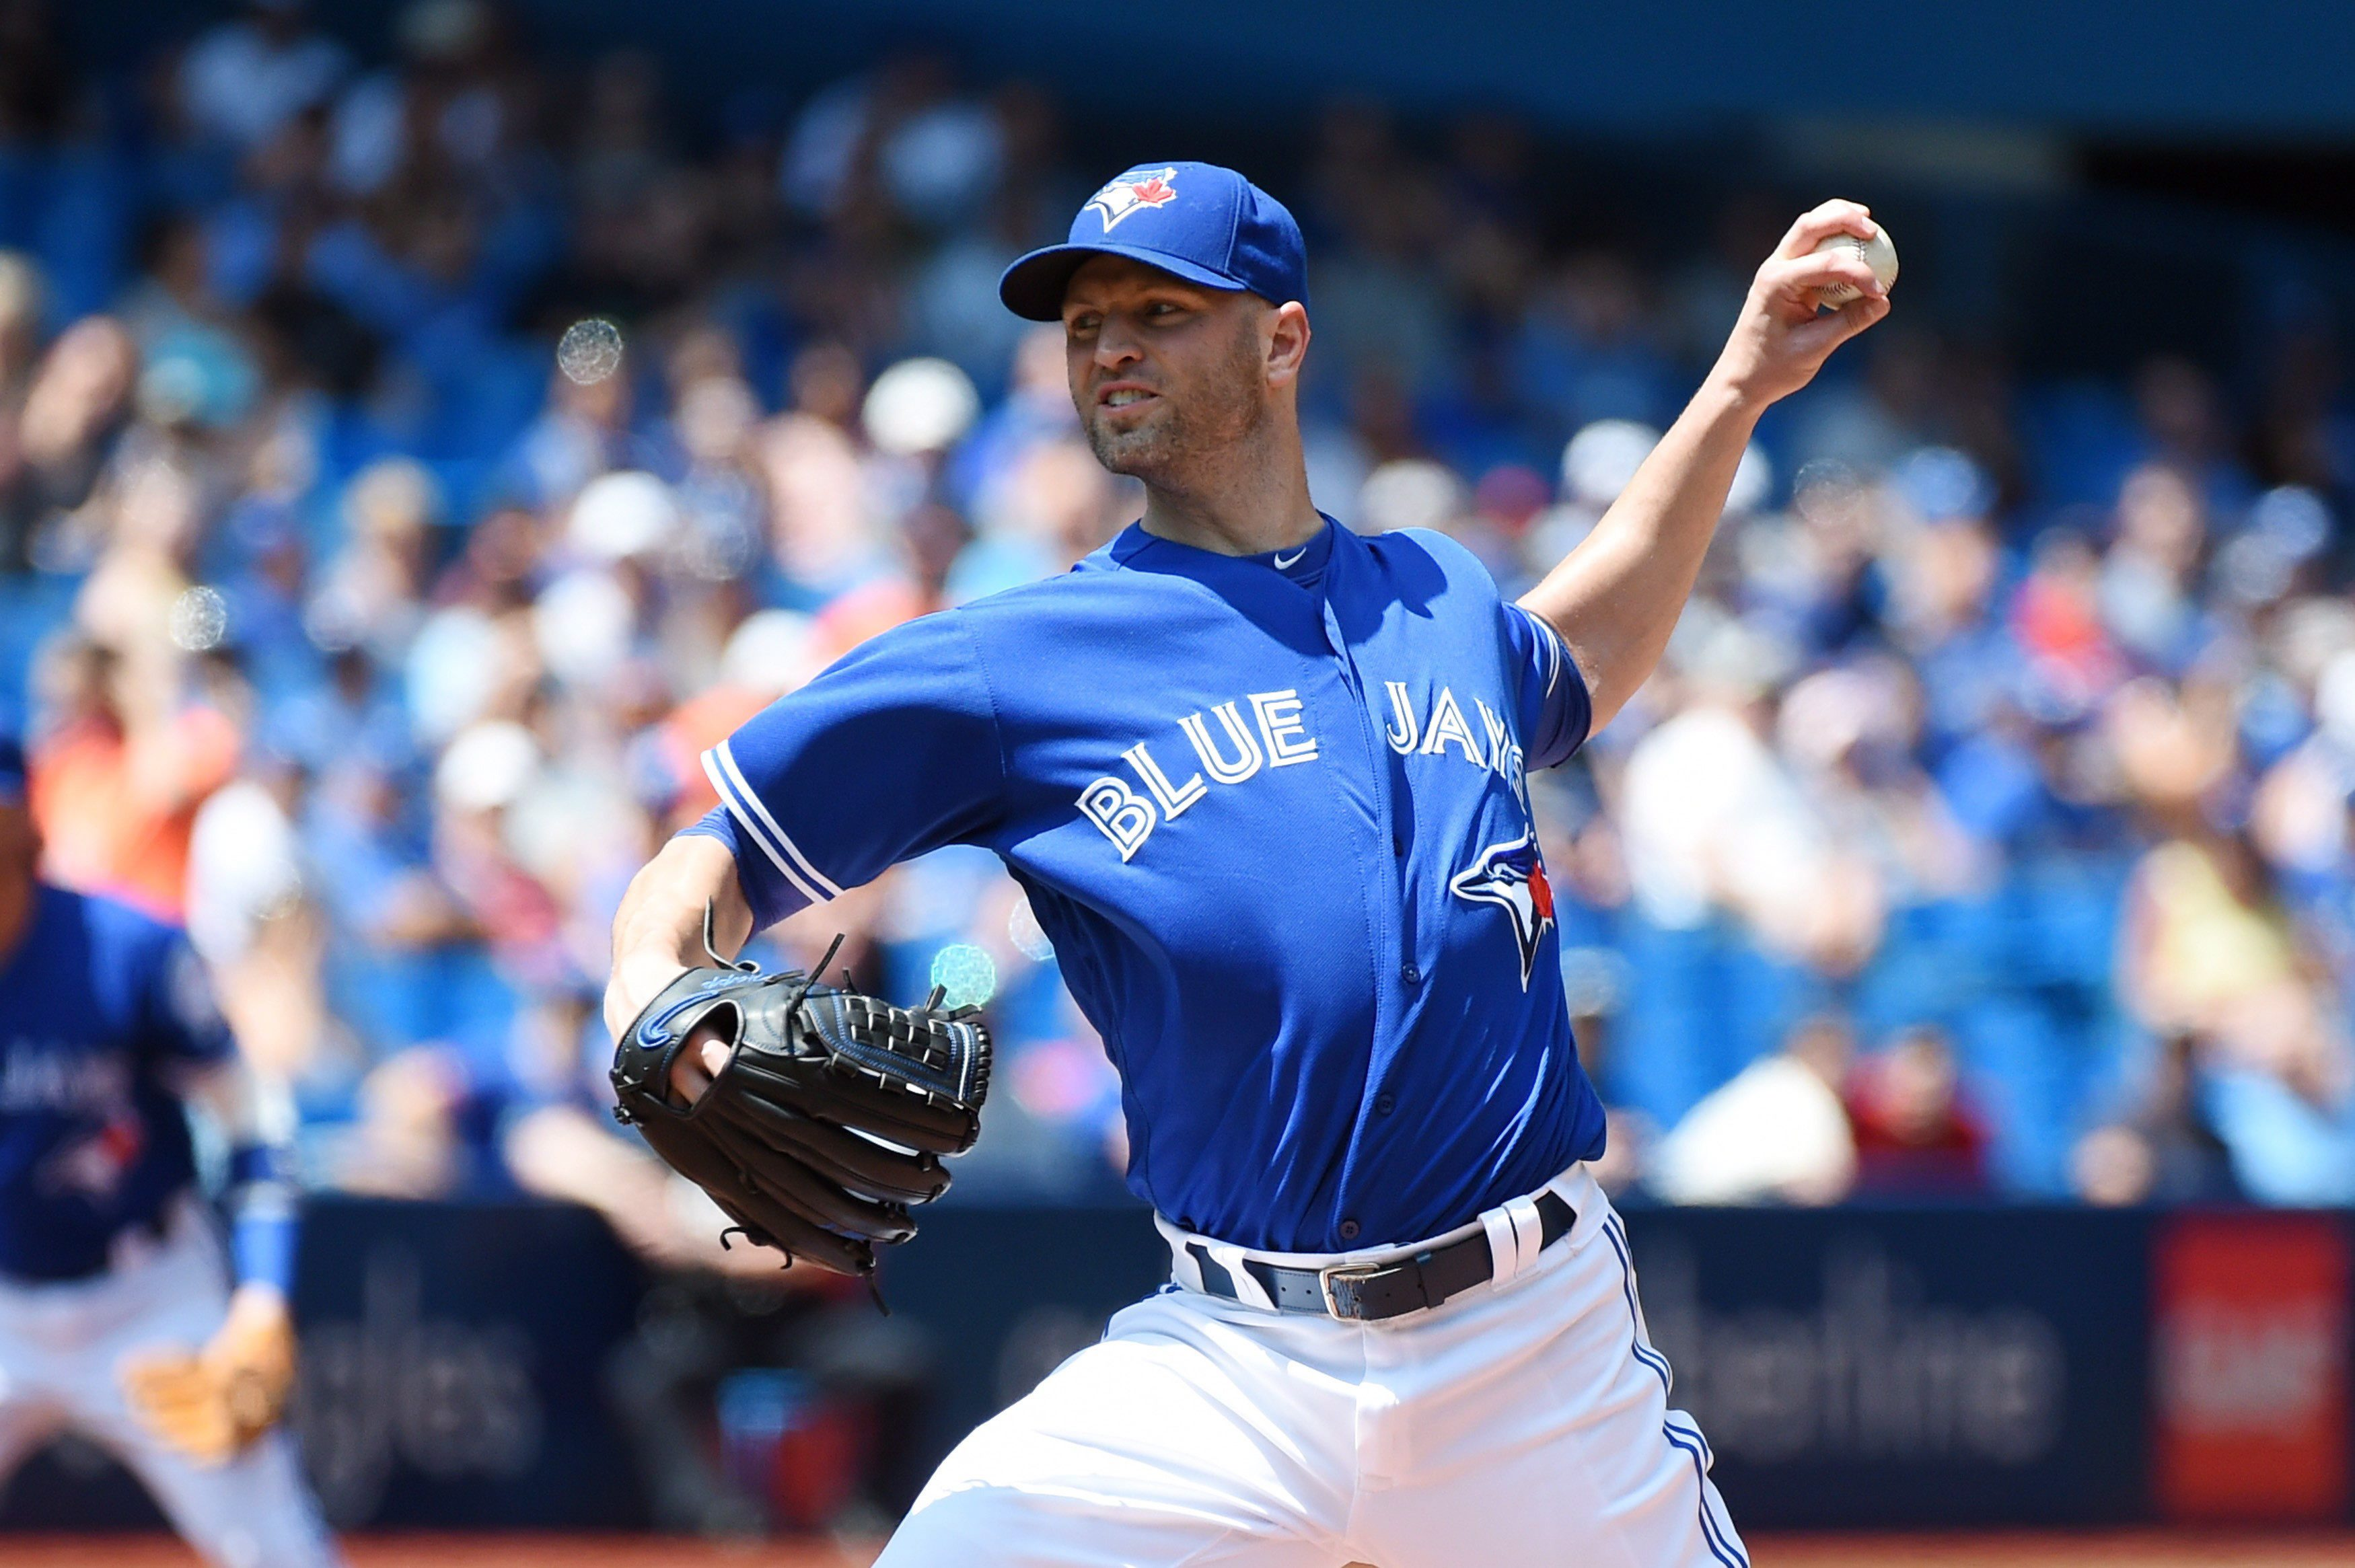 Yankees trade for left-hander JA Happ from Blue Jays